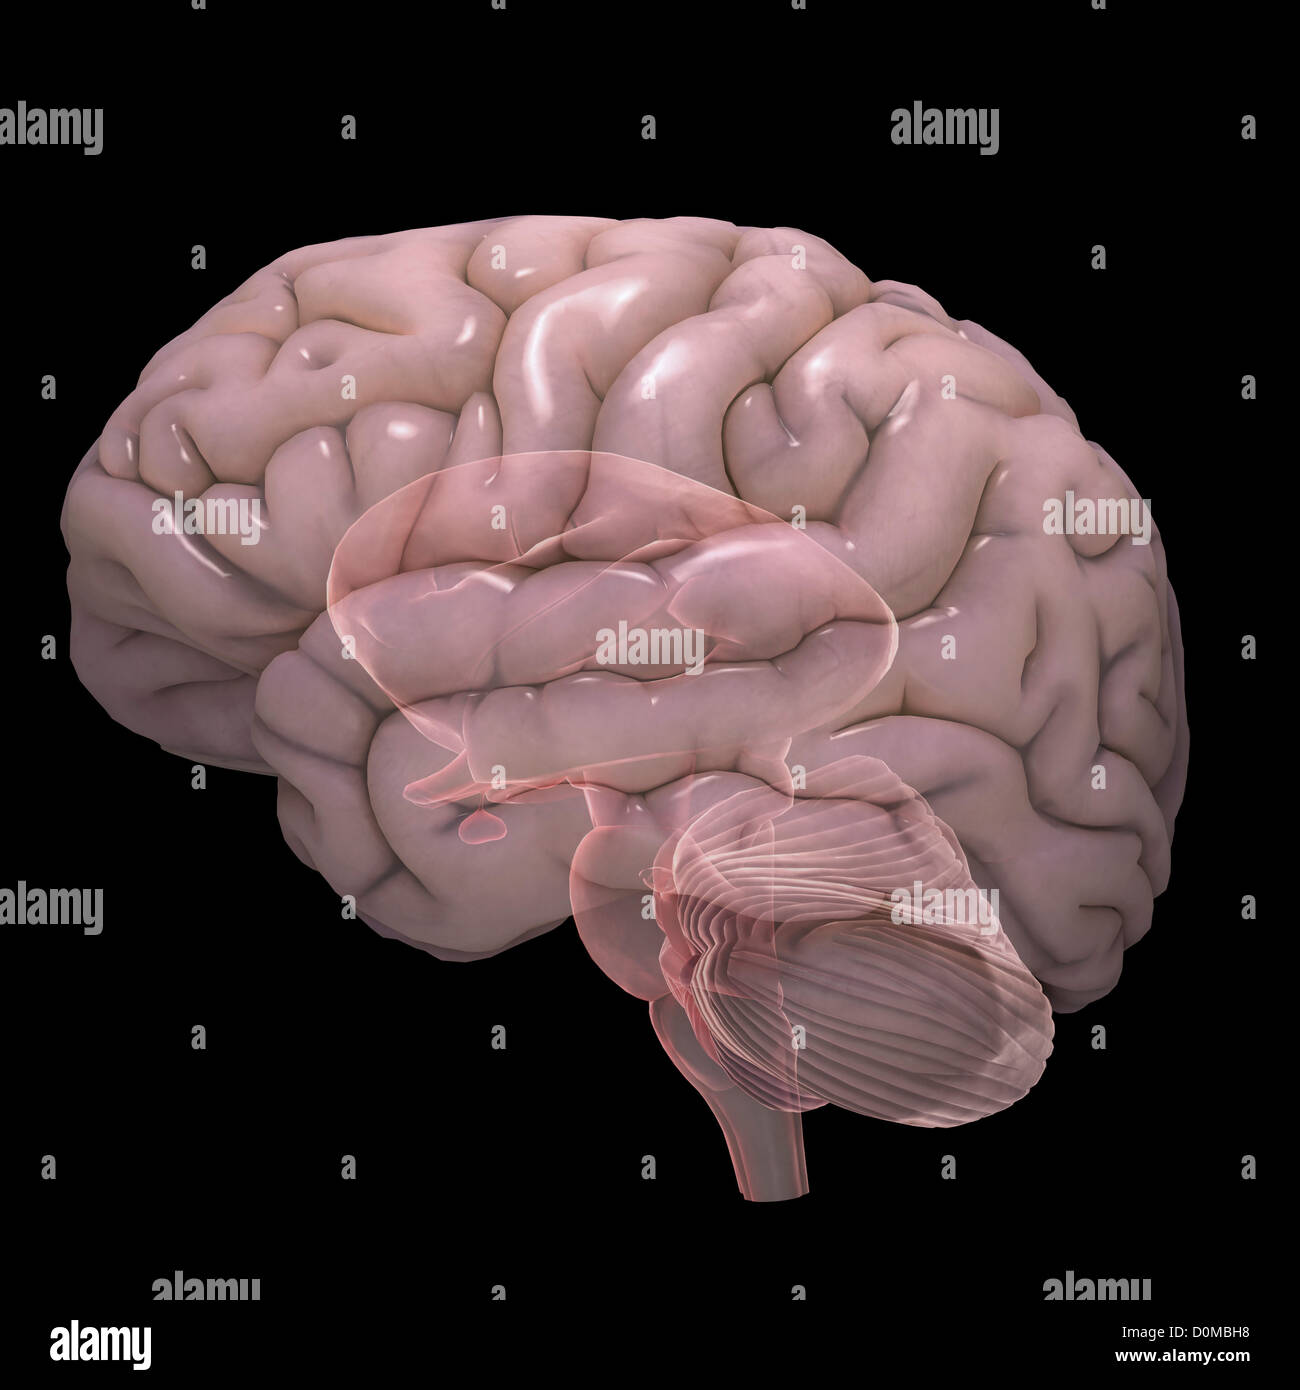 A stylized diagram of a human brain. - Stock Image